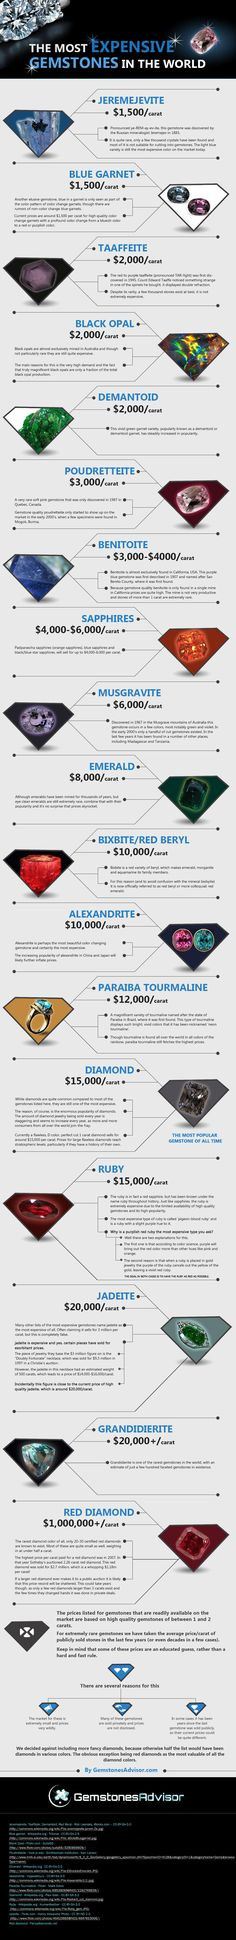 The Most Expensive Gemstones in the World Infographic - well, it's economic geology, give me a break!